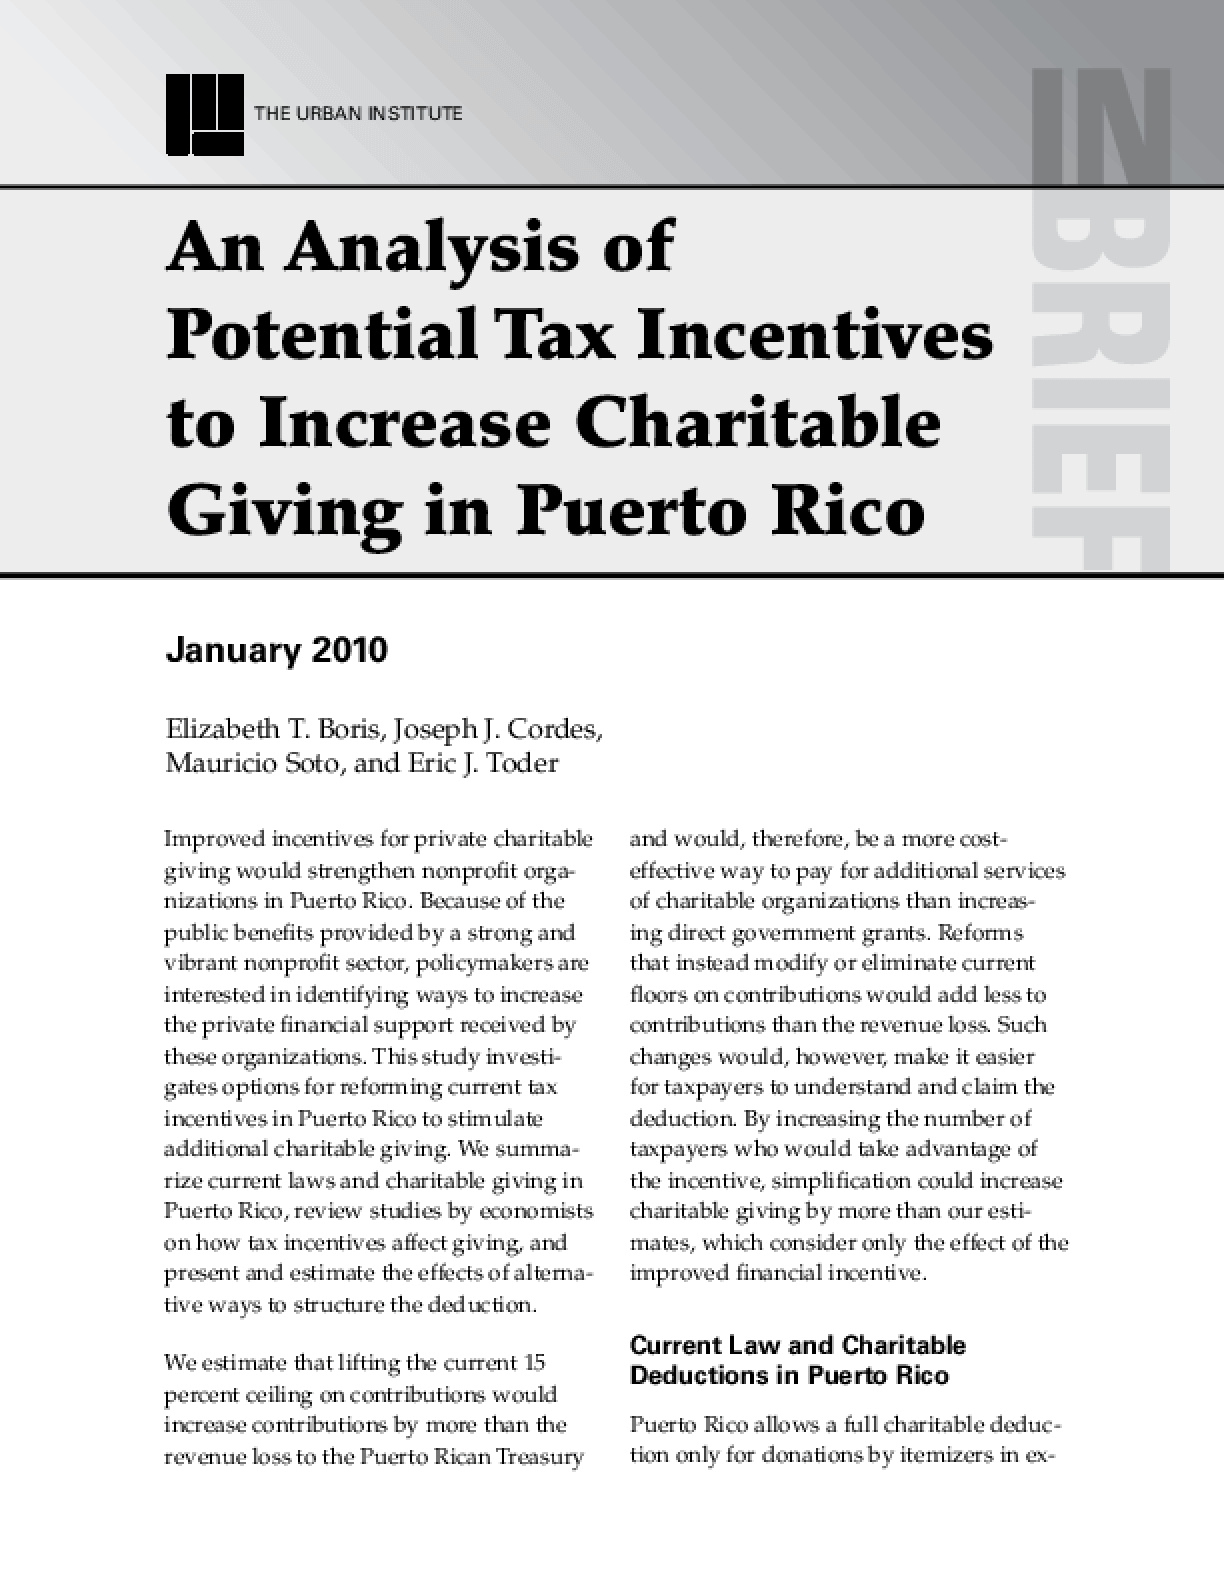 An Analysis of Potential Tax Incentives to Increase Charitable Giving in Puerto Rico